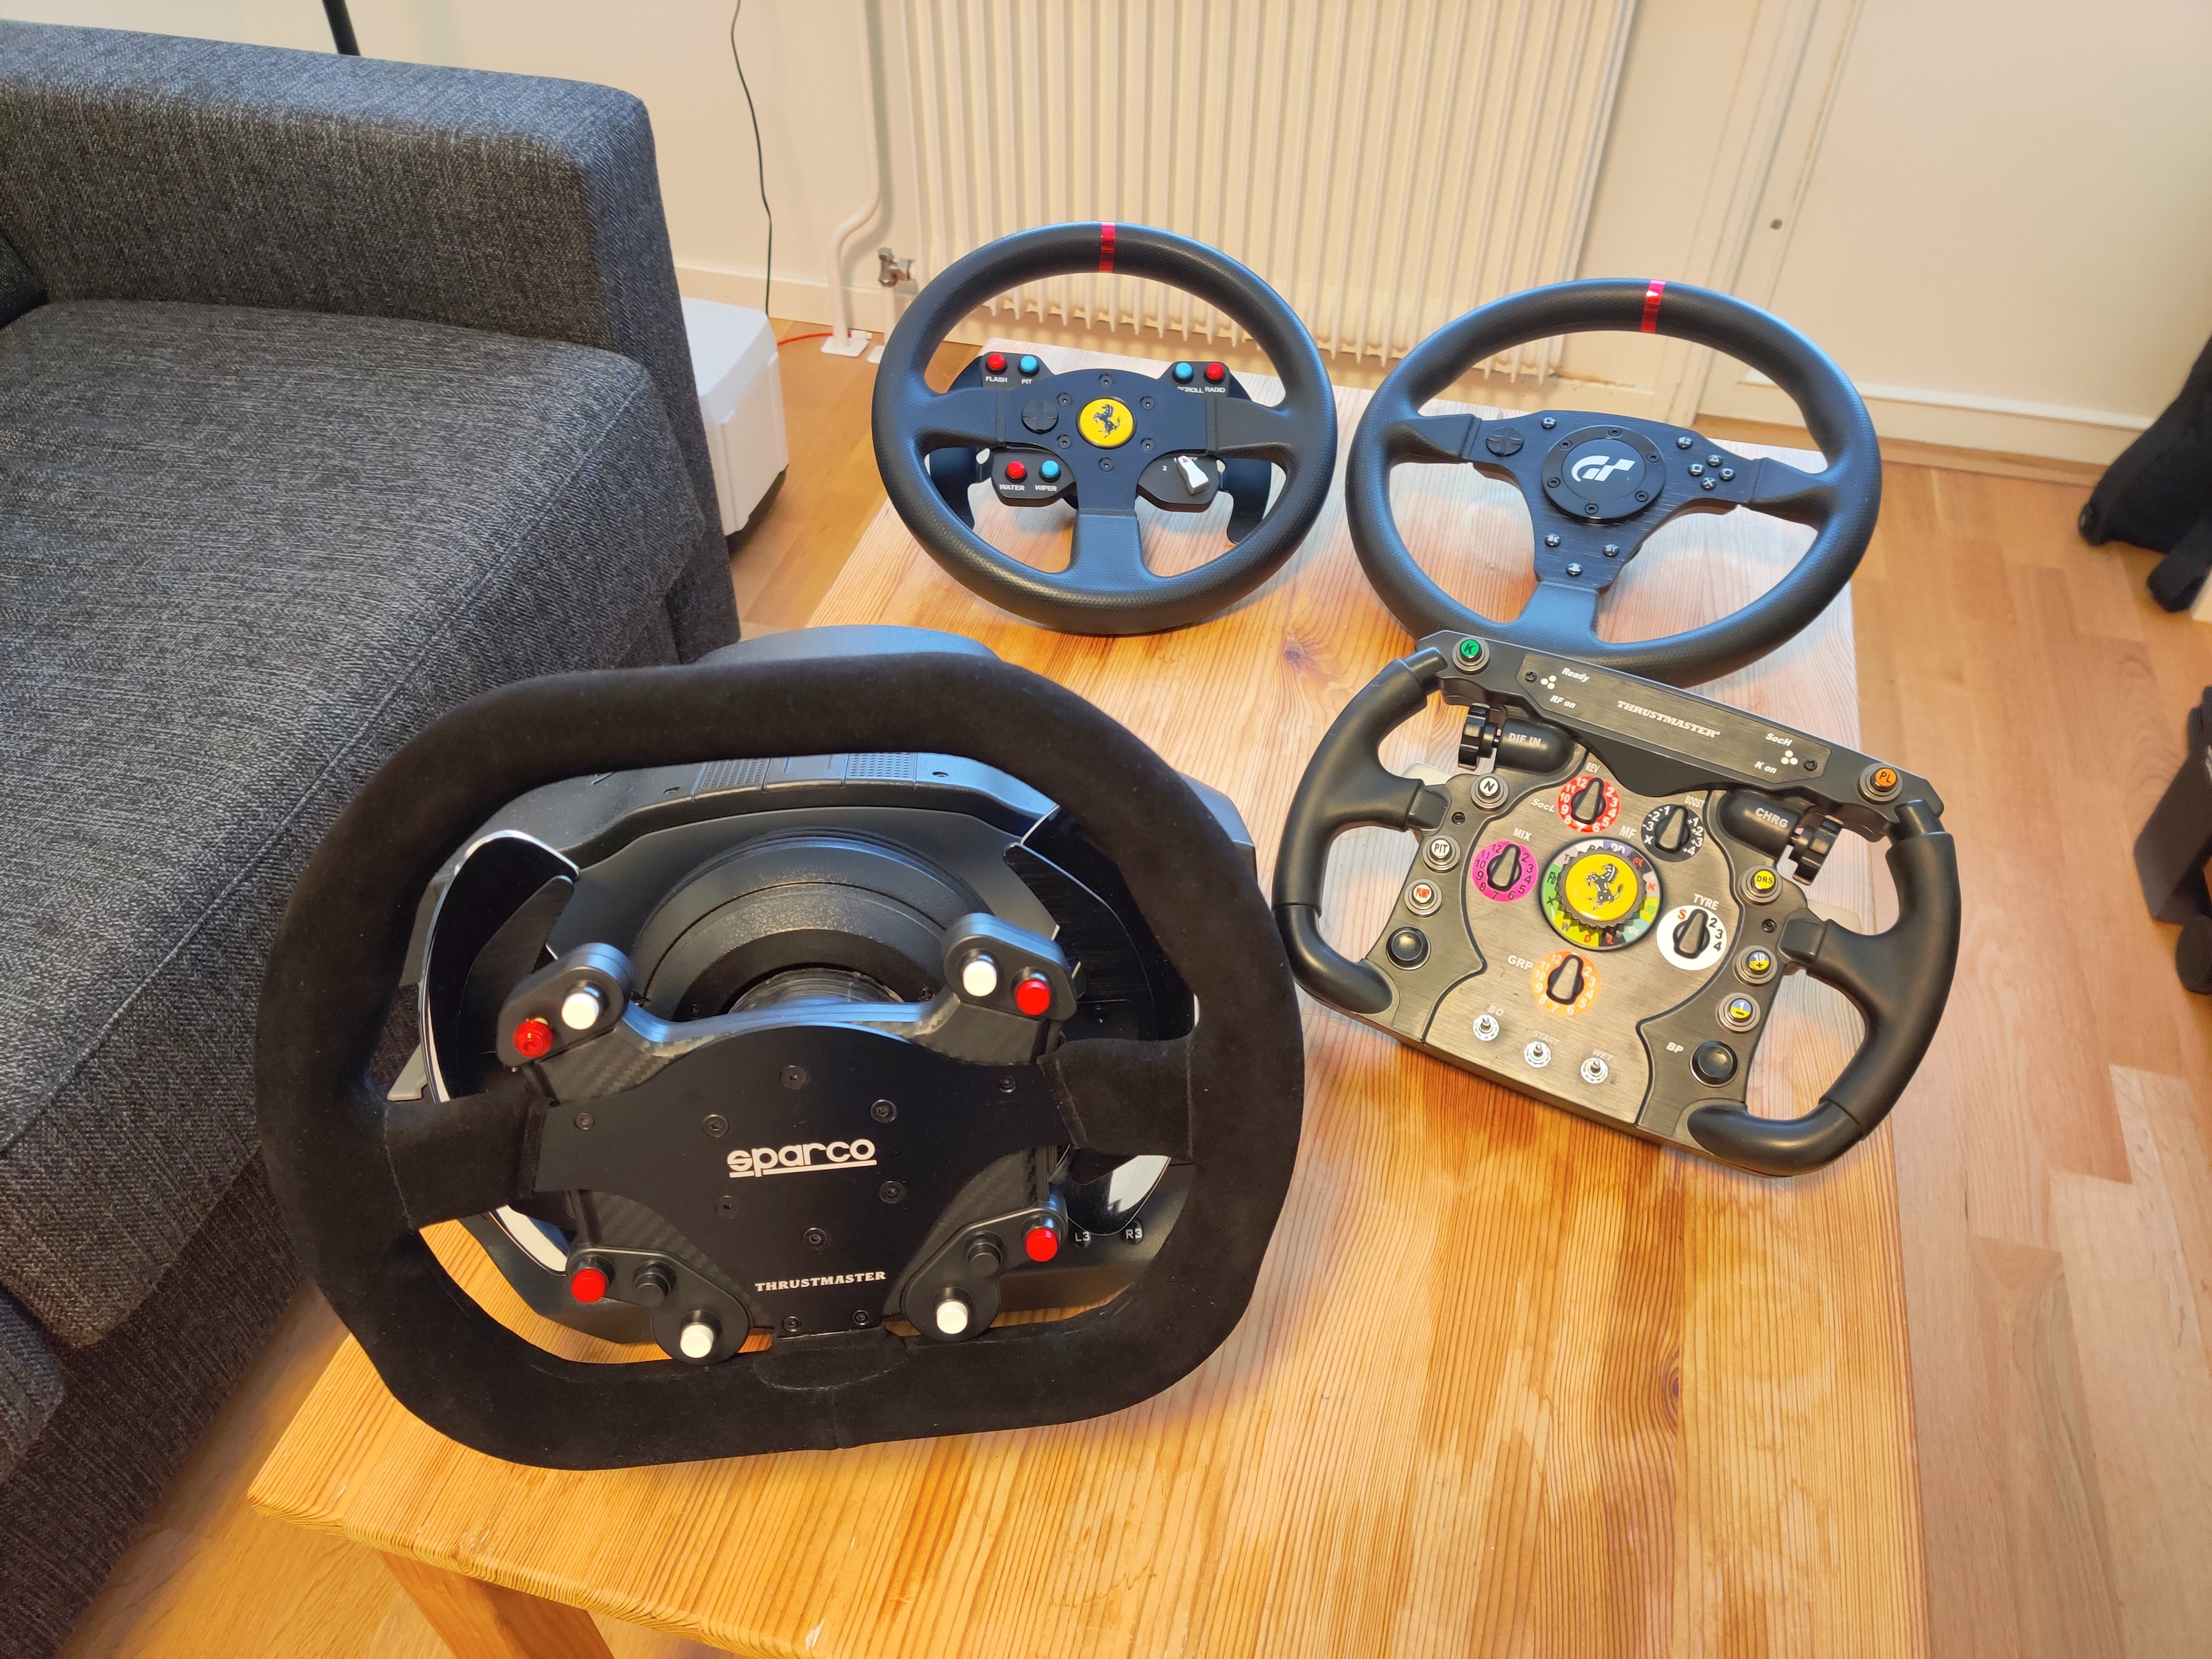 Best add-on for a Thrustmaster wheelbase